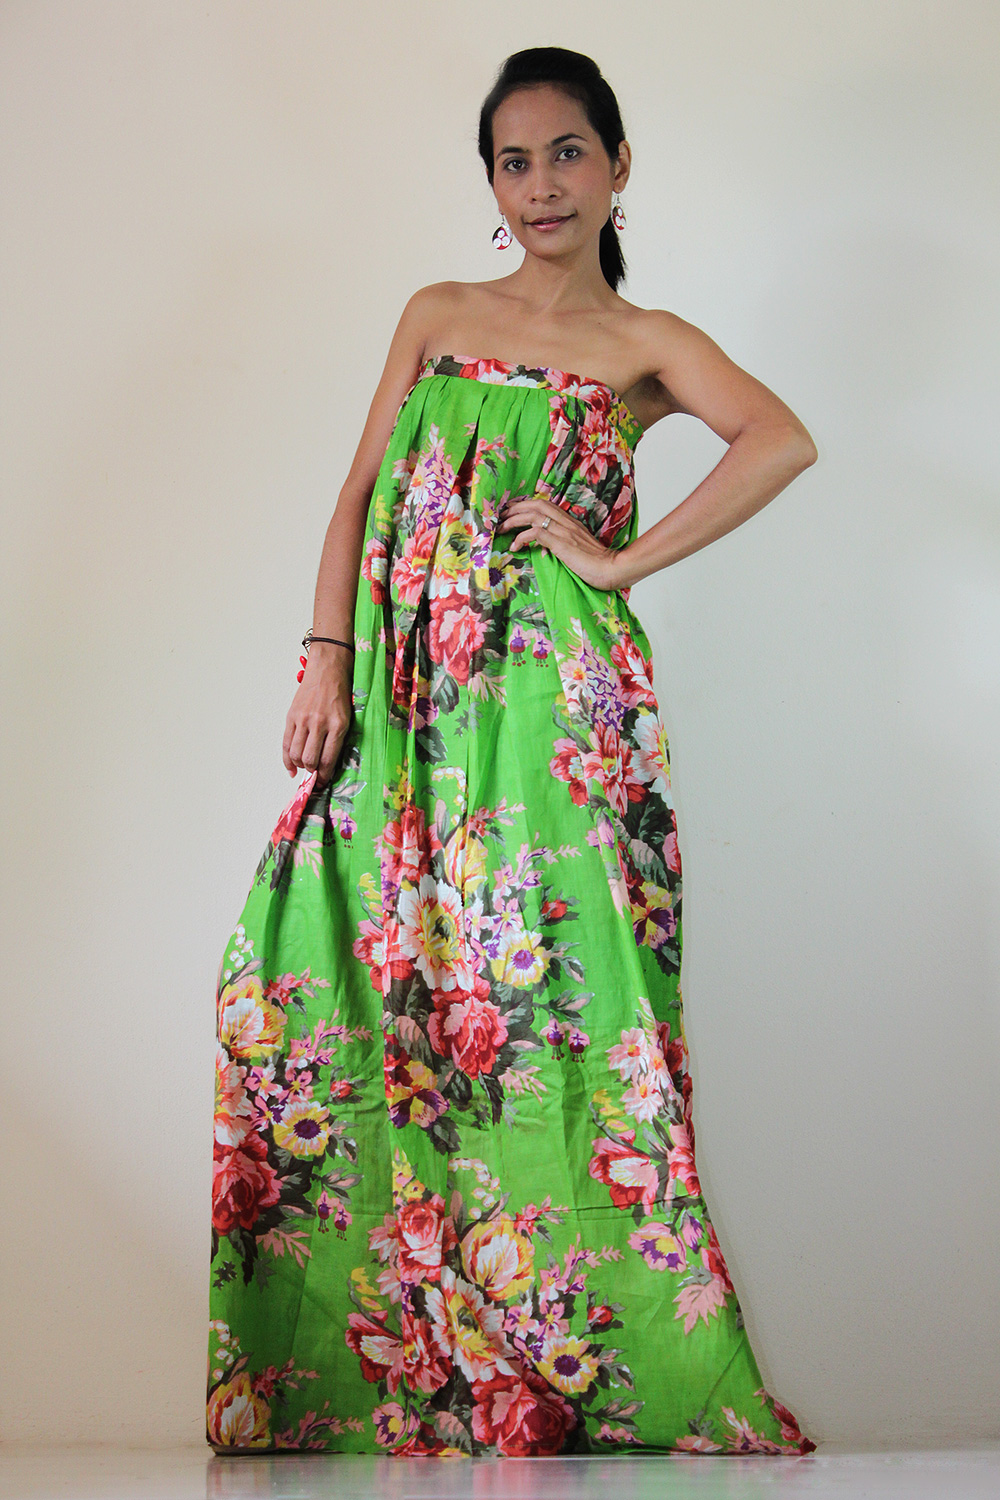 Green Maxi Dress Floral Party Bridesmaid Stylish Tube Halter Spring Summer Gown : Flower Blossom Collection